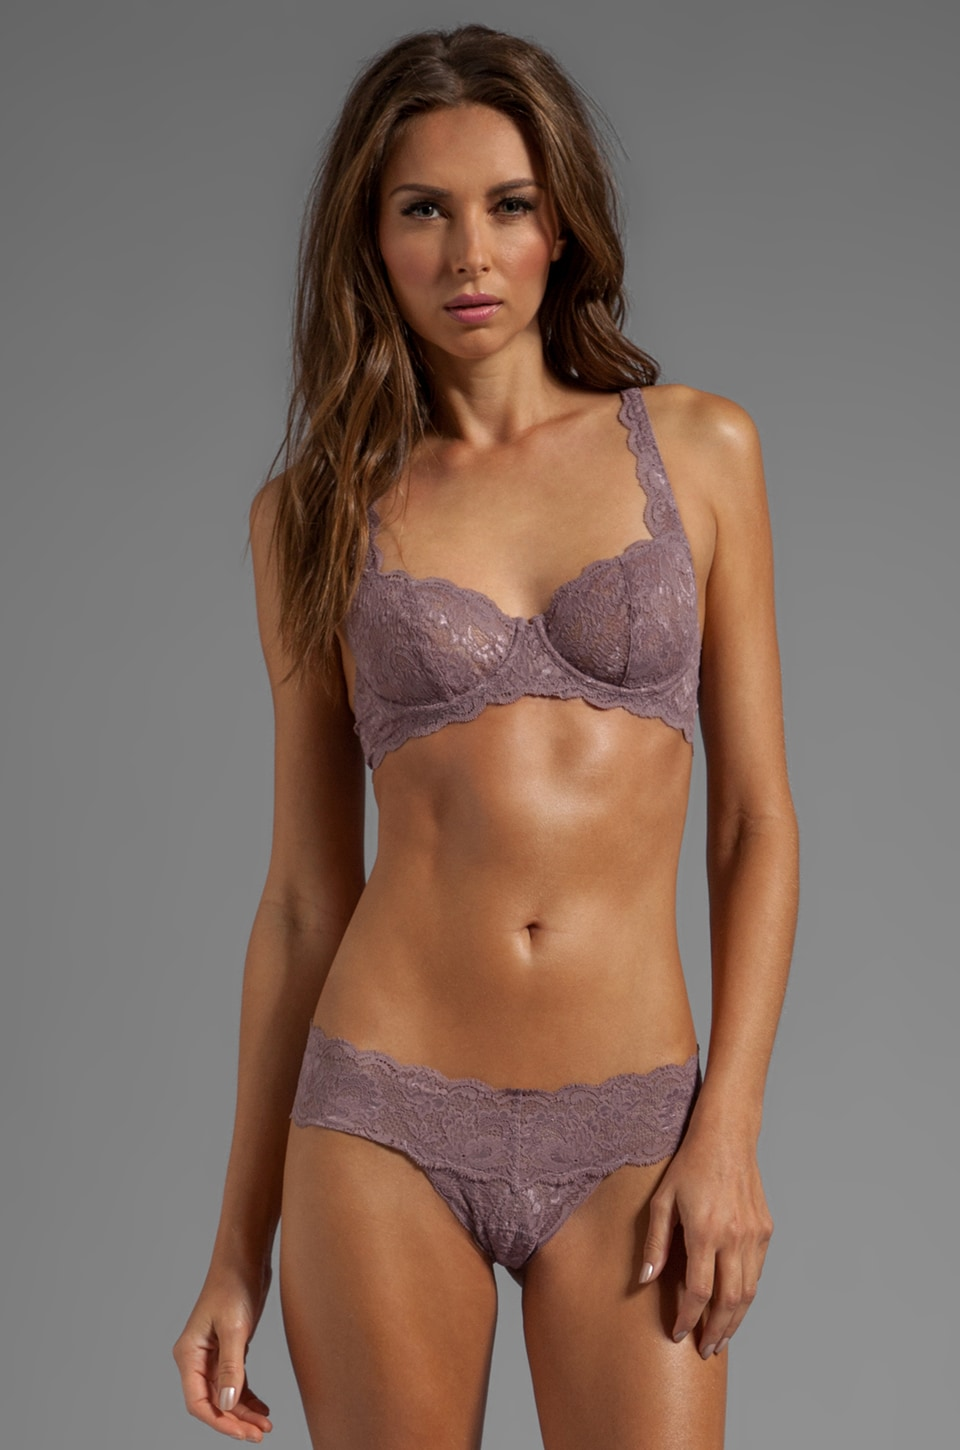 Cosabella Never Say Never Prettie Underwire Bra in Dusty Mauve